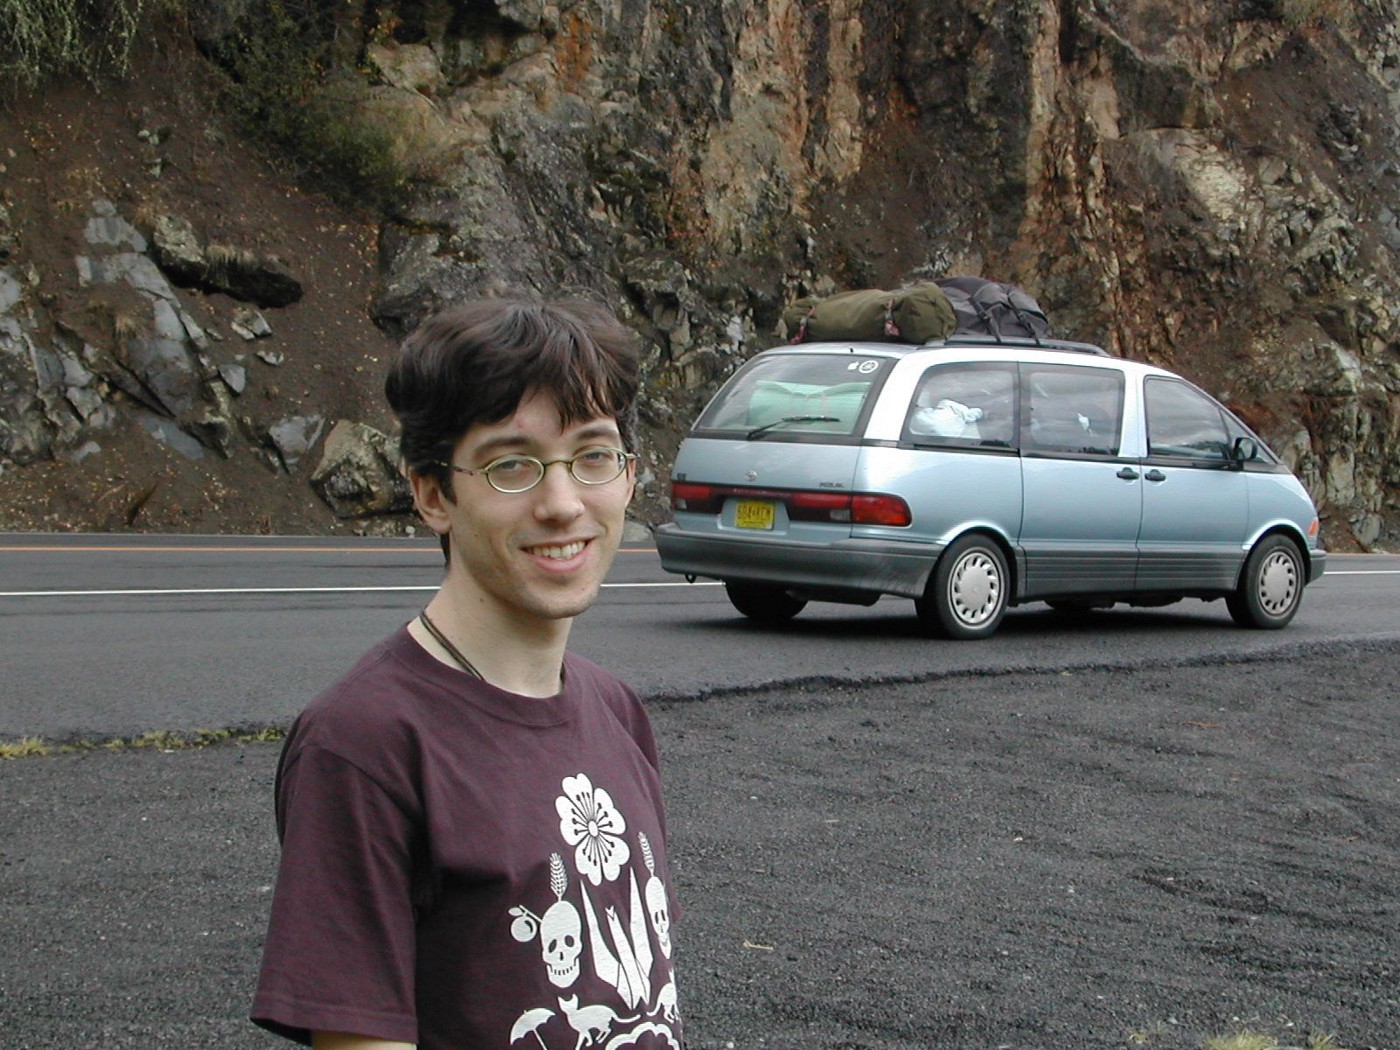 Paul Starr and his 1991 Toyota Previa, Van-Chan.